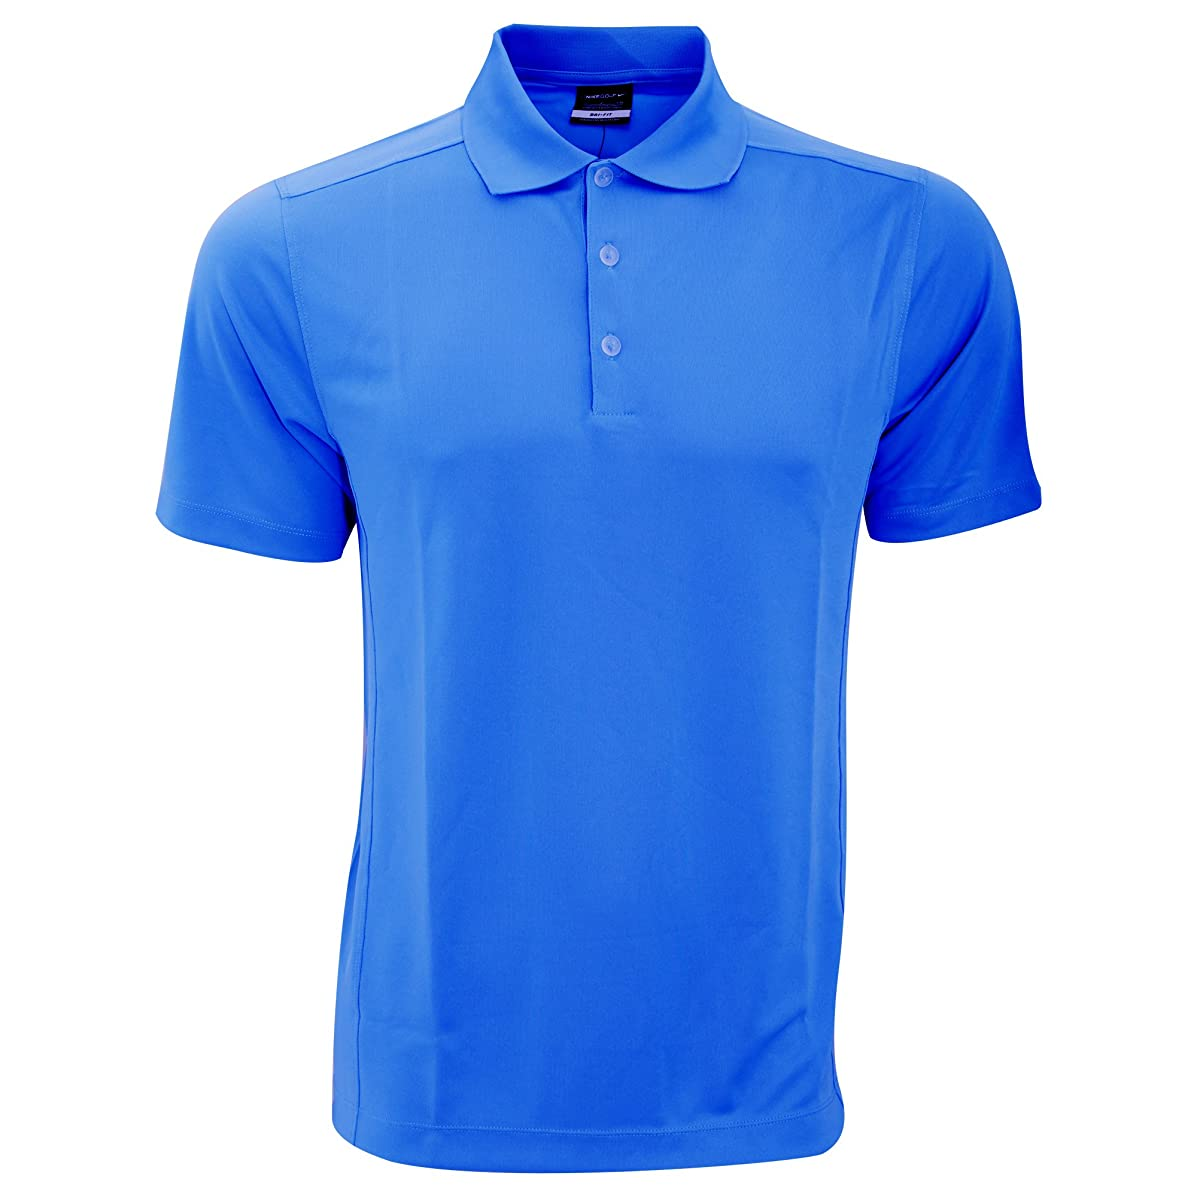 Nike Golf Mens SMU Plain Solid Knit Short Sleeve Polo Shirt